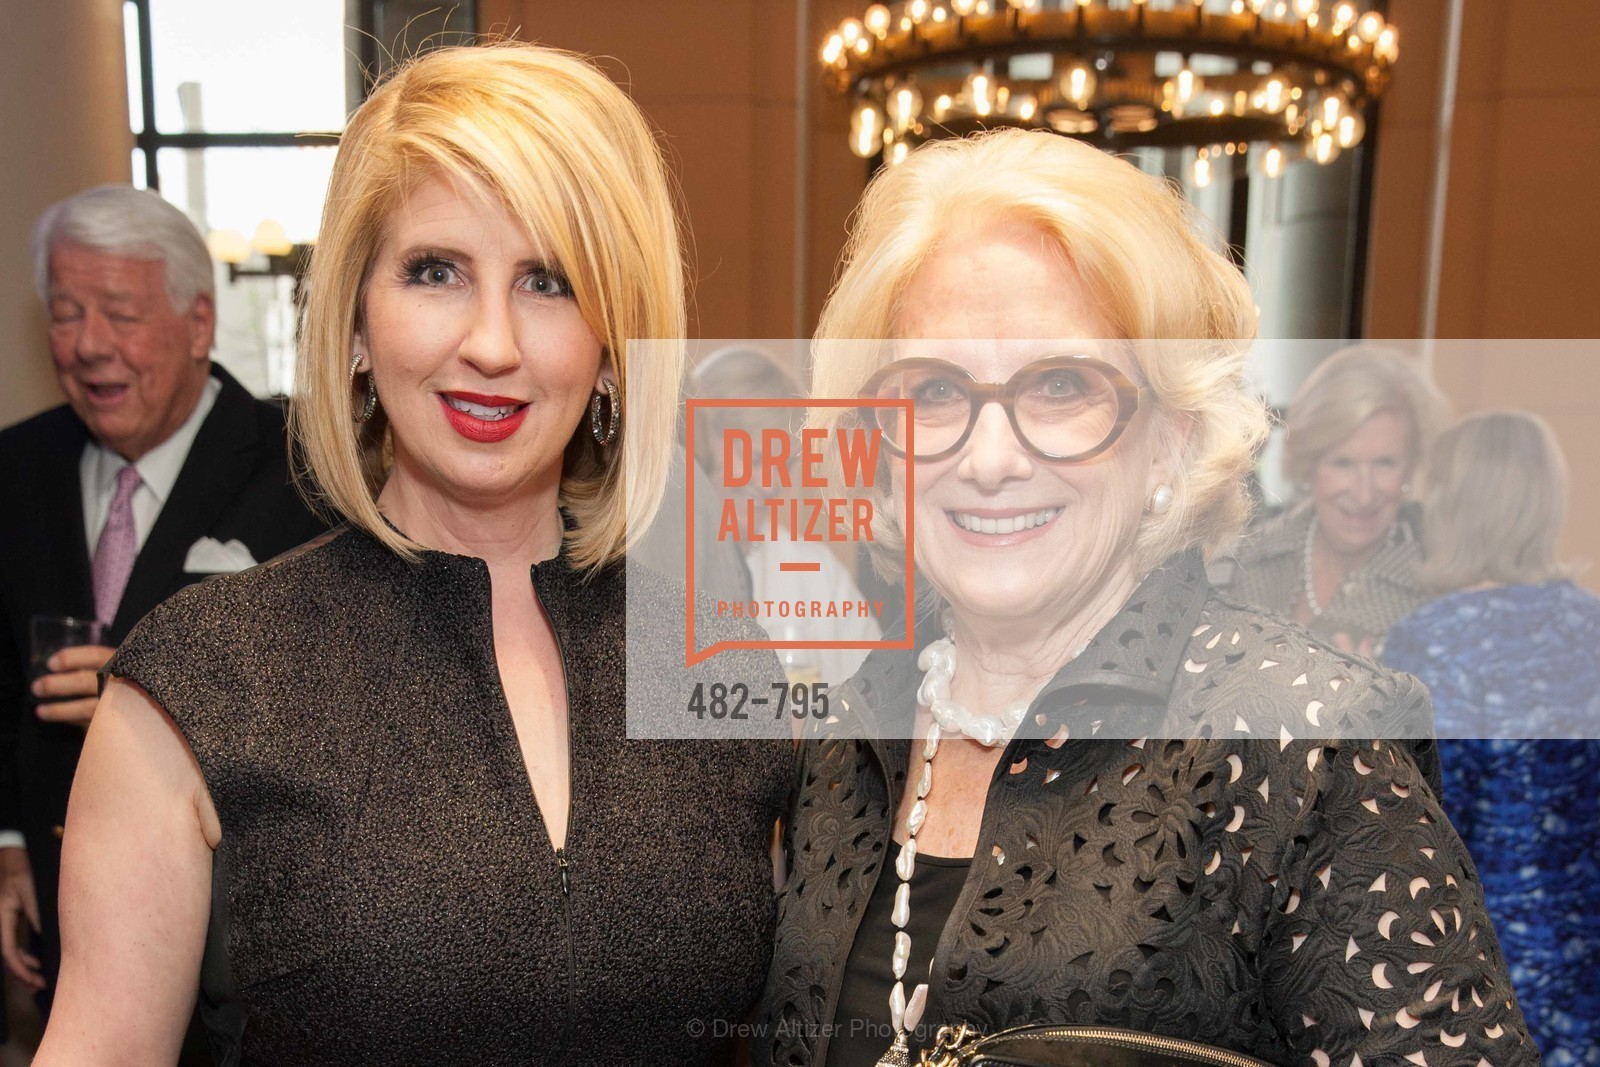 Roberta Economidis, Cynthia Molstad, COMPASS FAMILY SERVICES Annual Spring Benefit:  Every Family Needs A Home, US, April 23rd, 2015,Drew Altizer, Drew Altizer Photography, full-service agency, private events, San Francisco photographer, photographer california